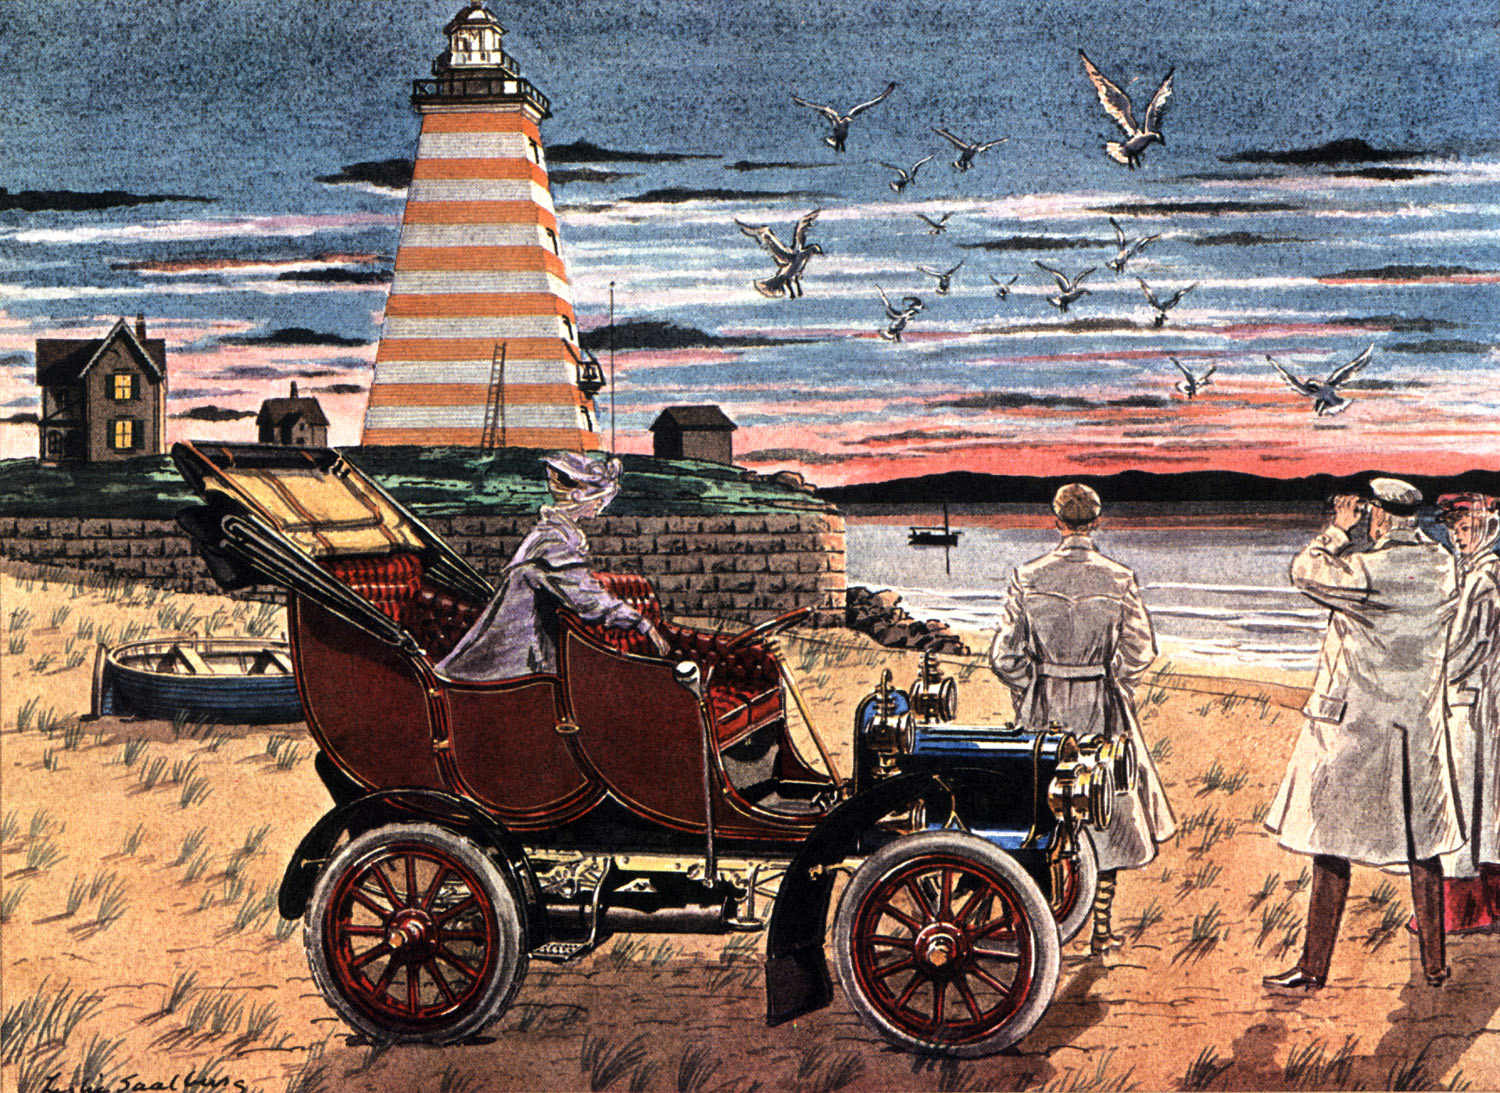 1906 Cadillac - Illustrated by Leslie Saalburg